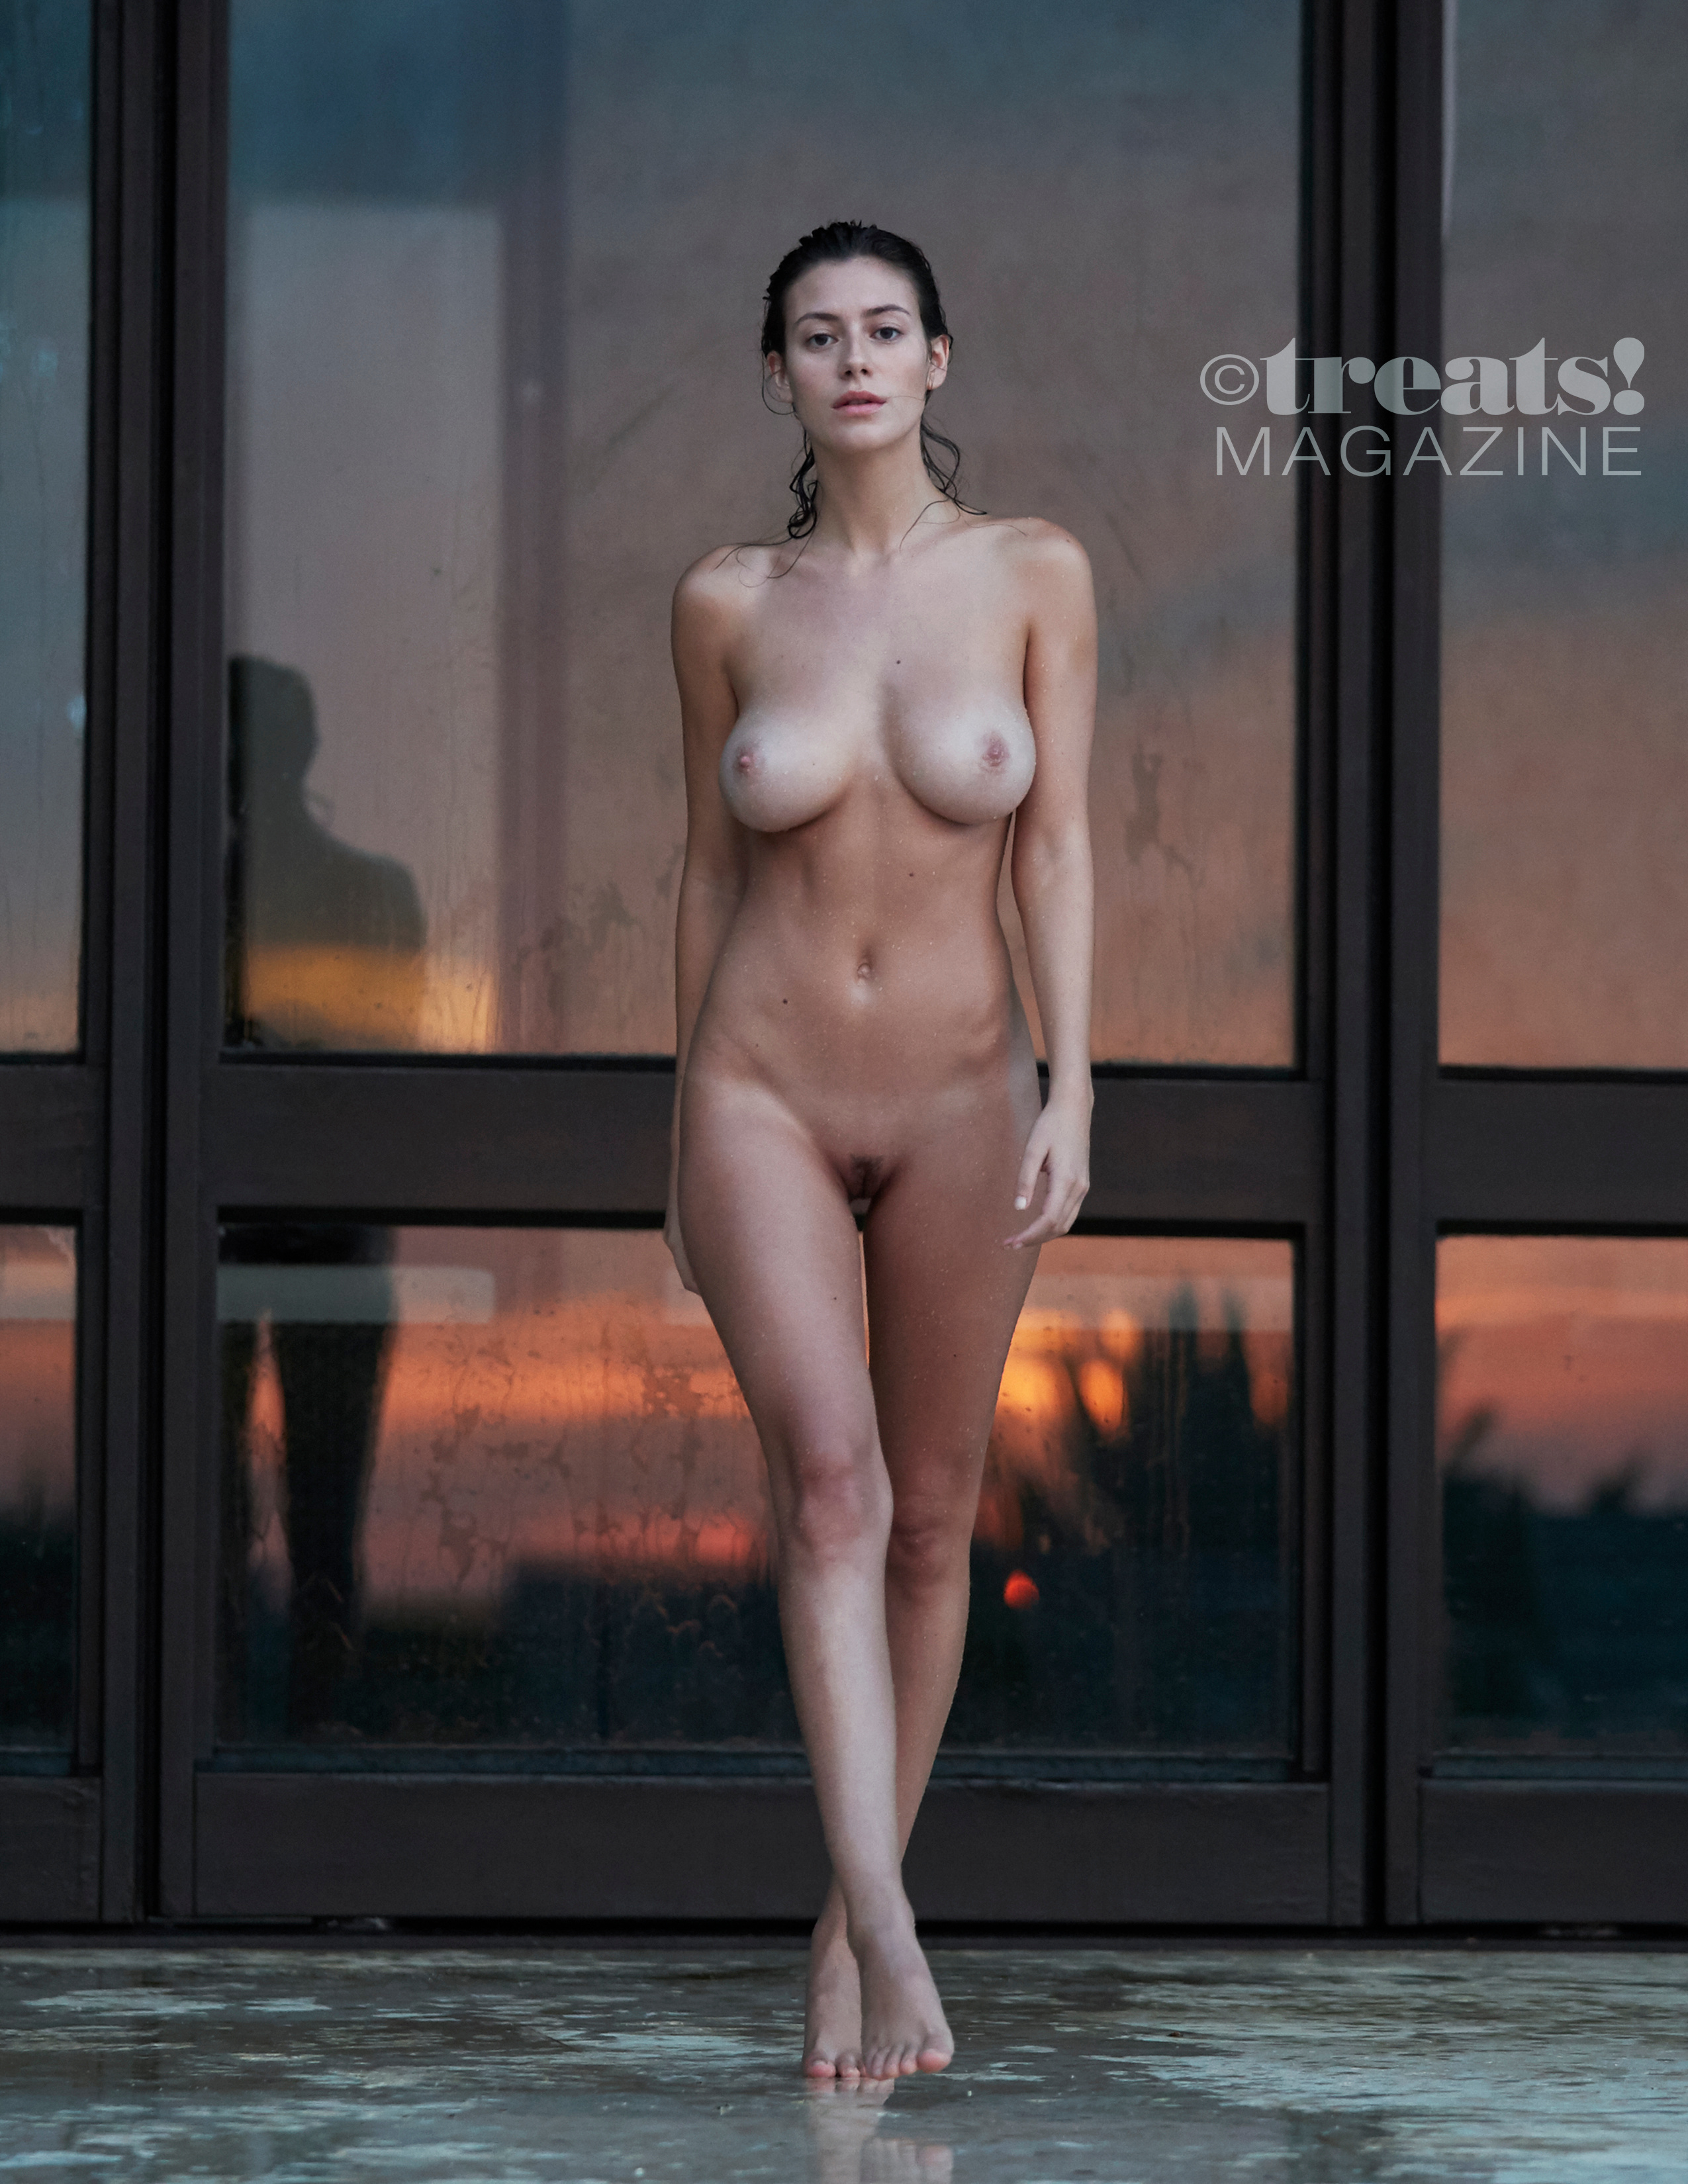 alejandra-guilmant-perfect-nude-body-erotic-treats-magazine-by-david-bellemere-30